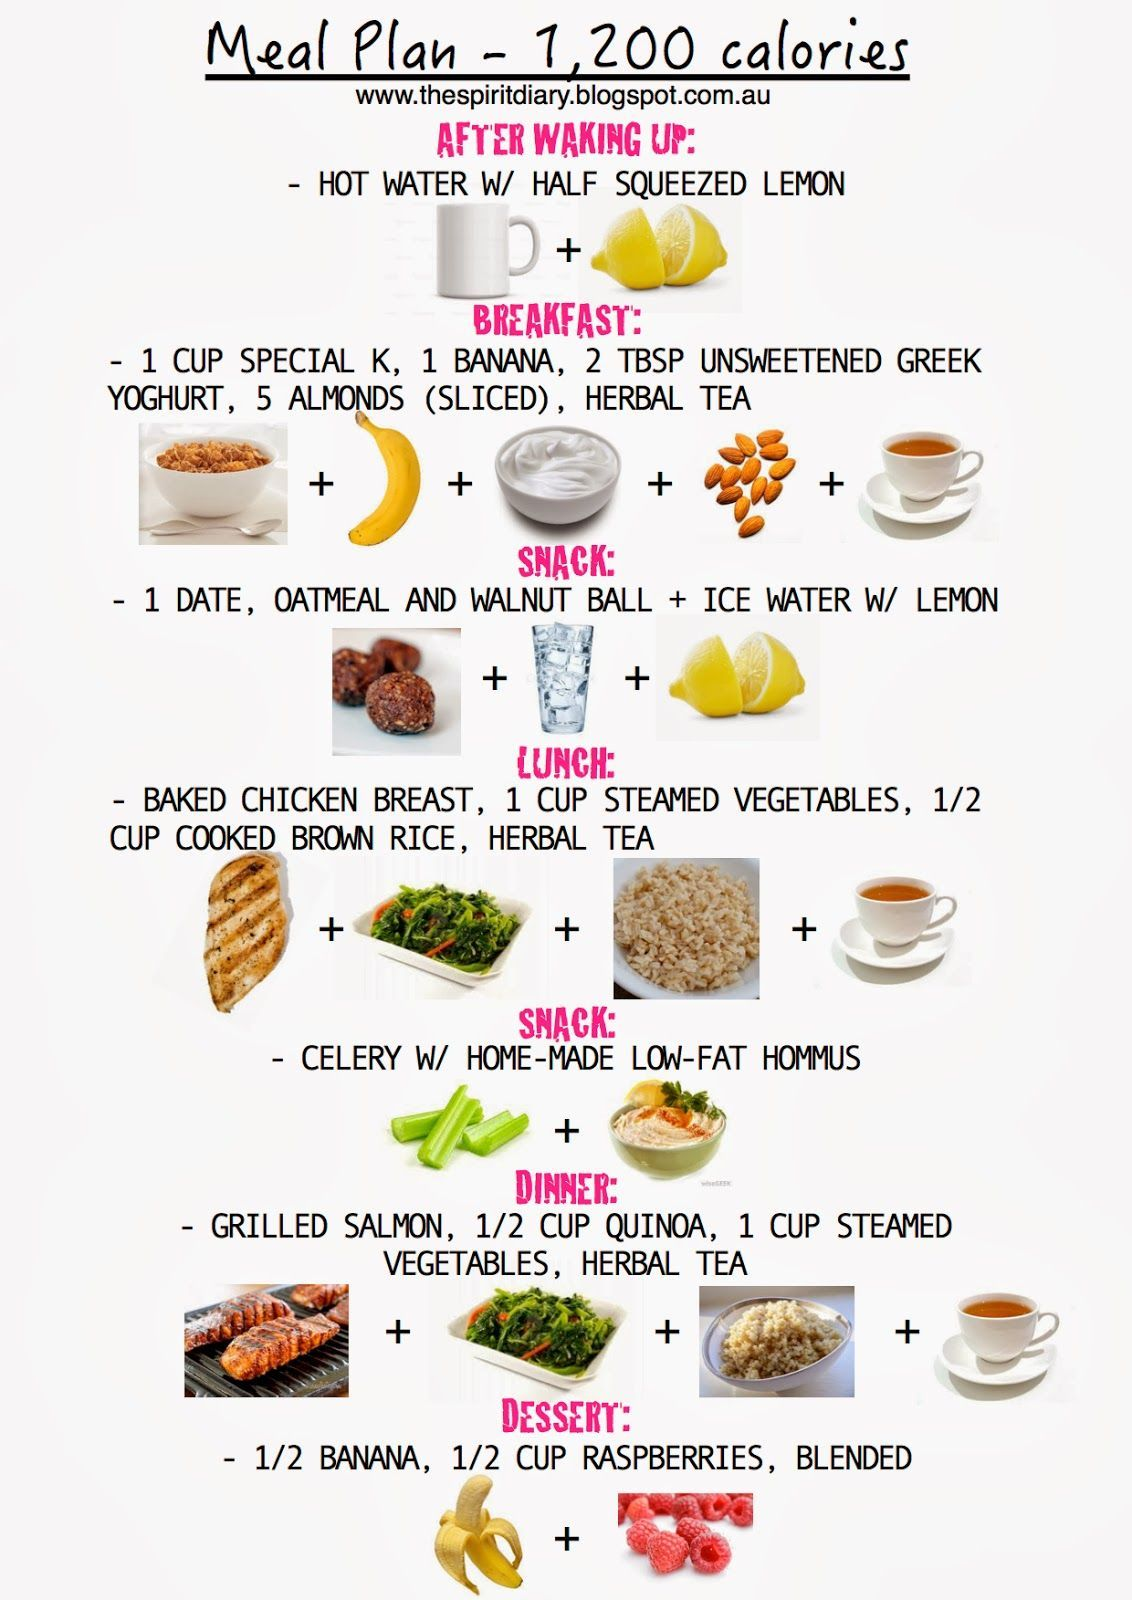 Meal Plan: 1,200 calories (summer) - The Spirit Diary Weight Loss Meal Plan